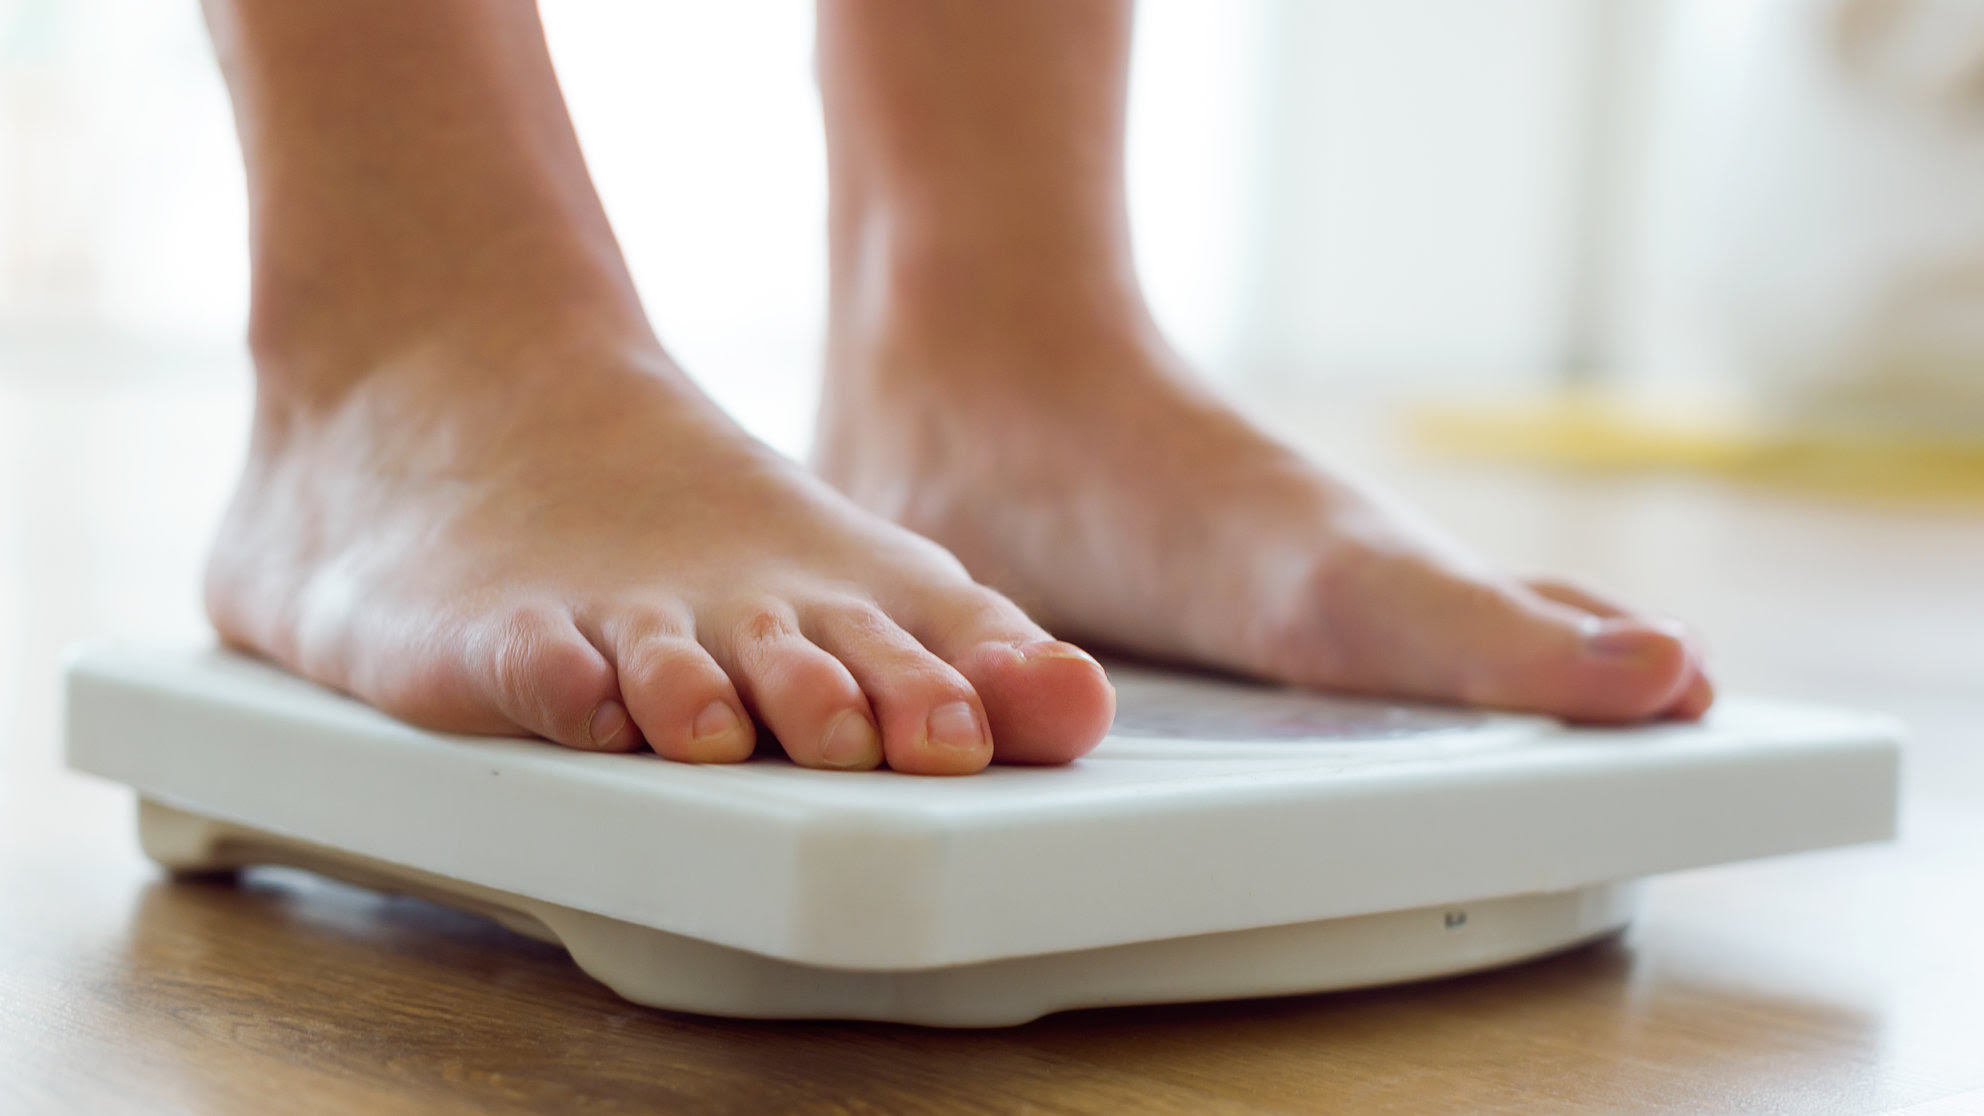 Diet and Exercise Work for Weight Loss, Even If You Have the 'Obesity Gene'